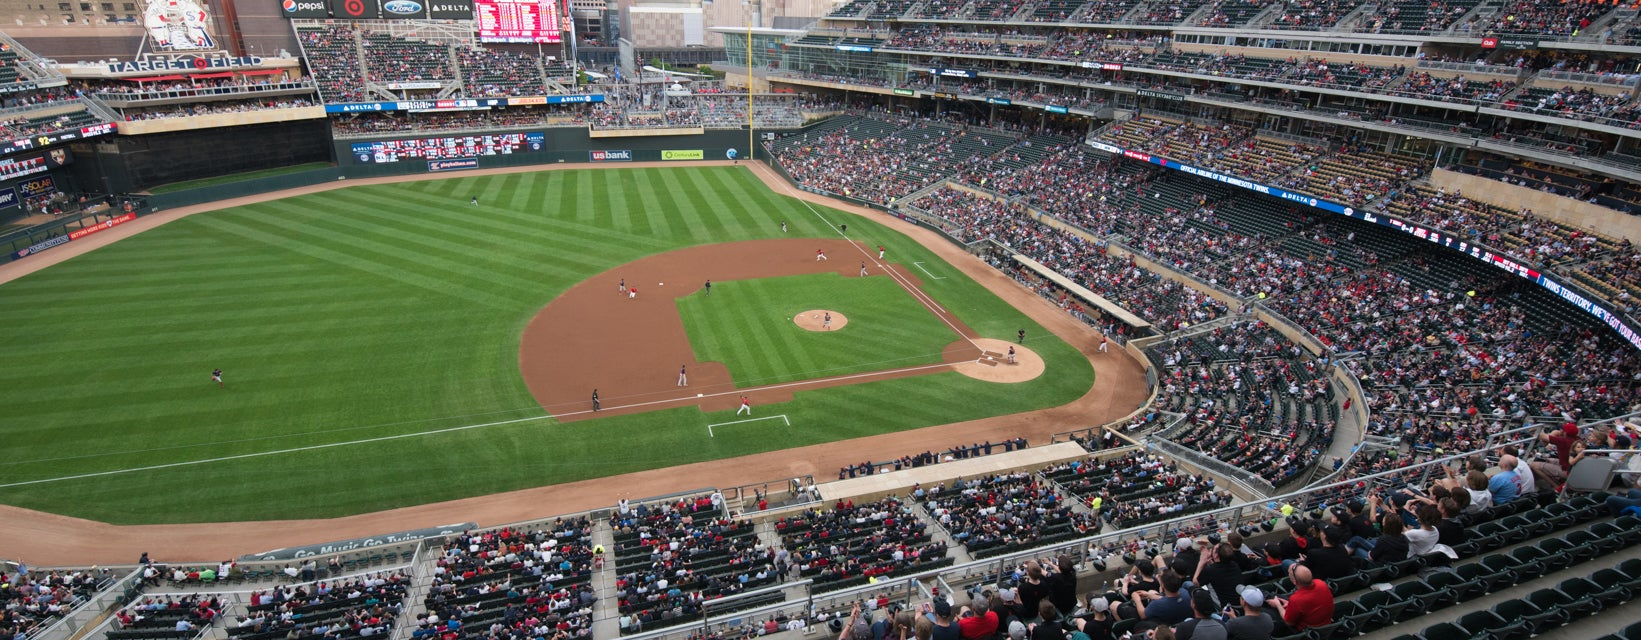 Seat view from Home Plate View